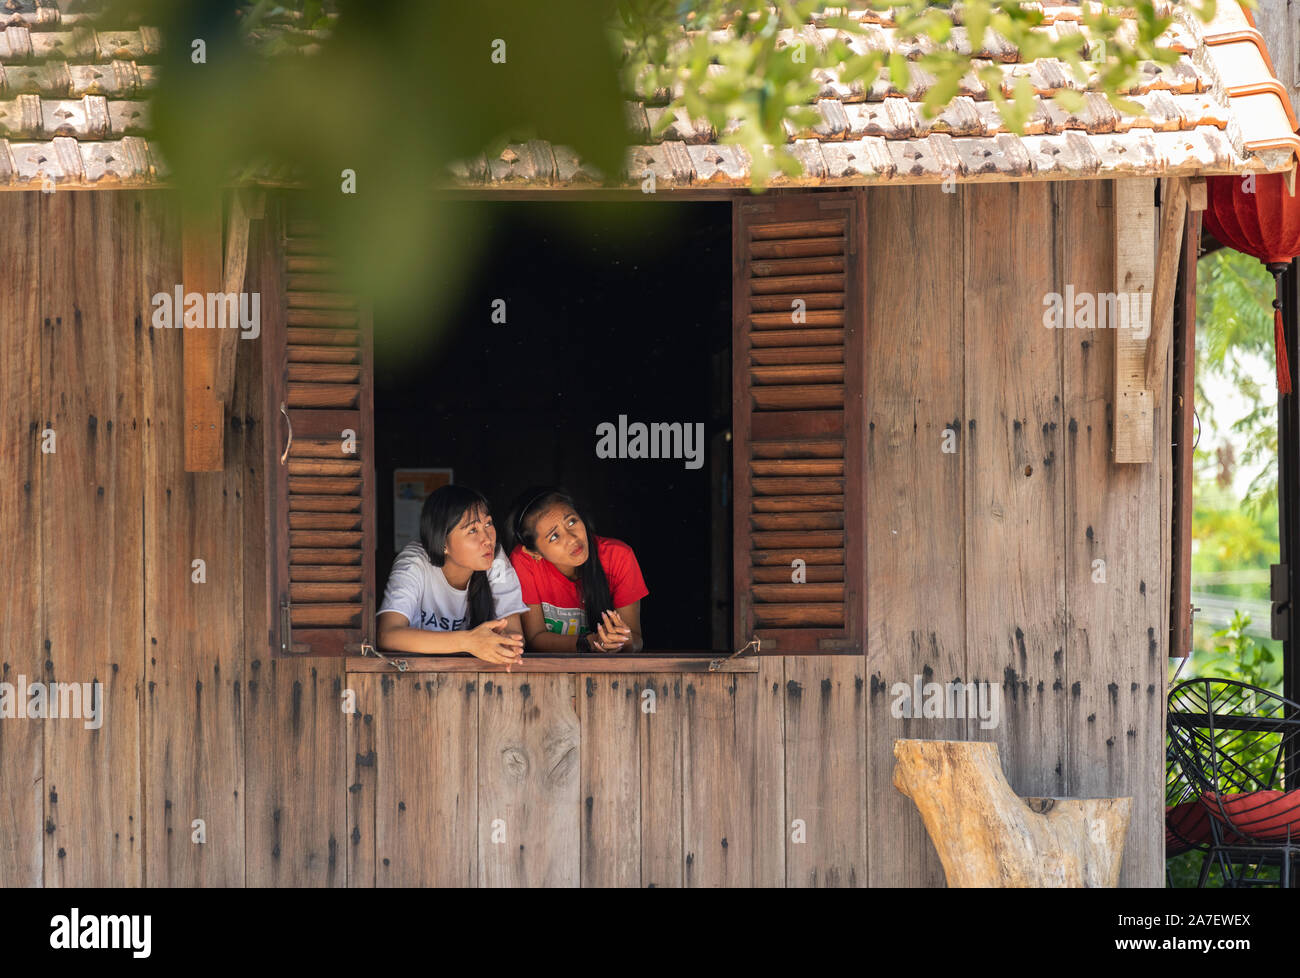 Vietnam Phu Quoc island 2 April 2019. two waitress girls look cautiously out the open window of the cafe from the burning in the air Stock Photo